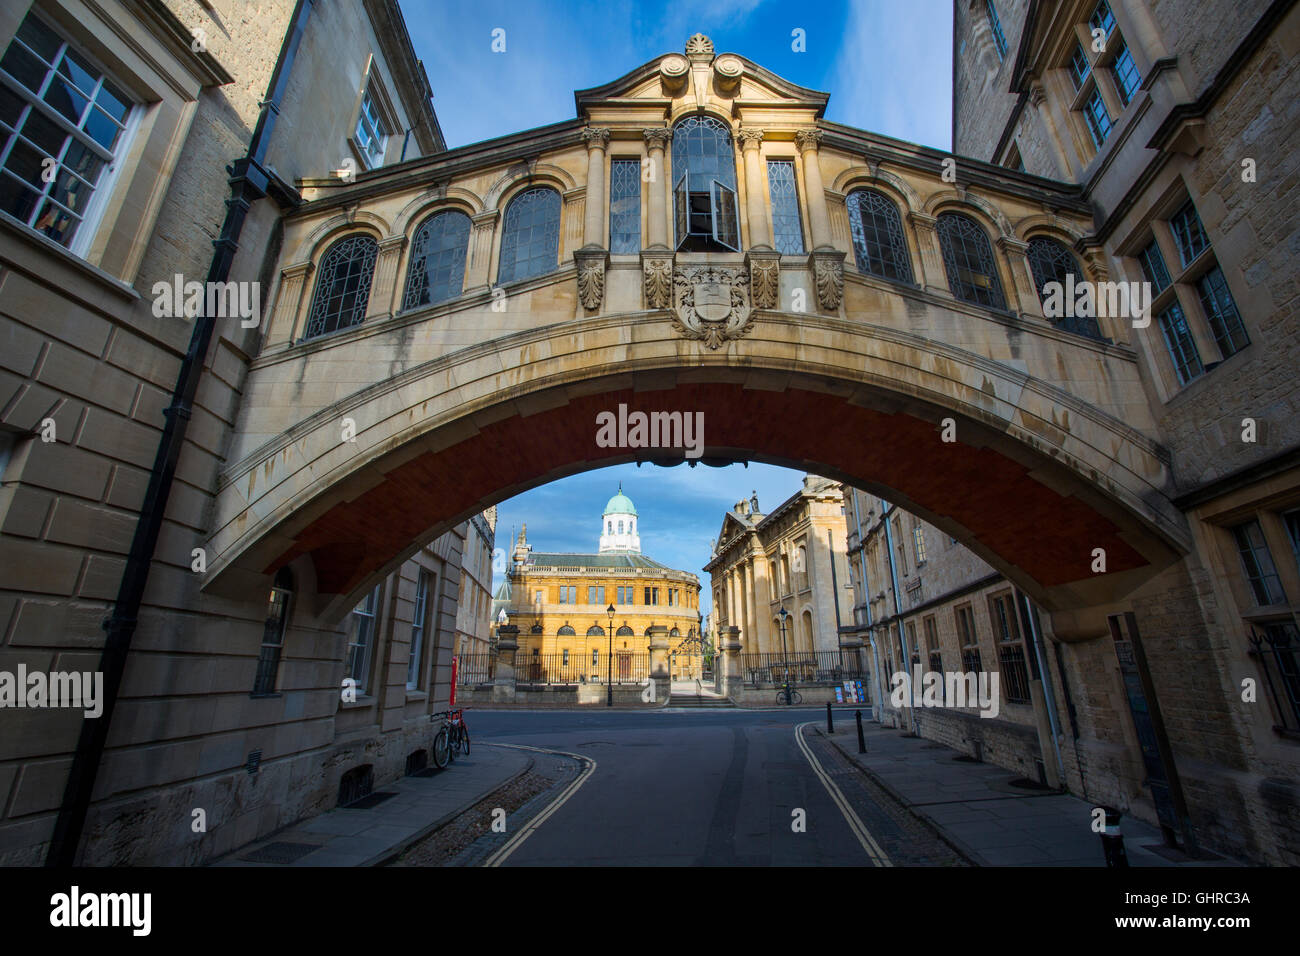 'Bridge of Sighs' walkway connecting two buildings of Hertford College over New College Lane, Oxford, Oxfordshire, - Stock Image